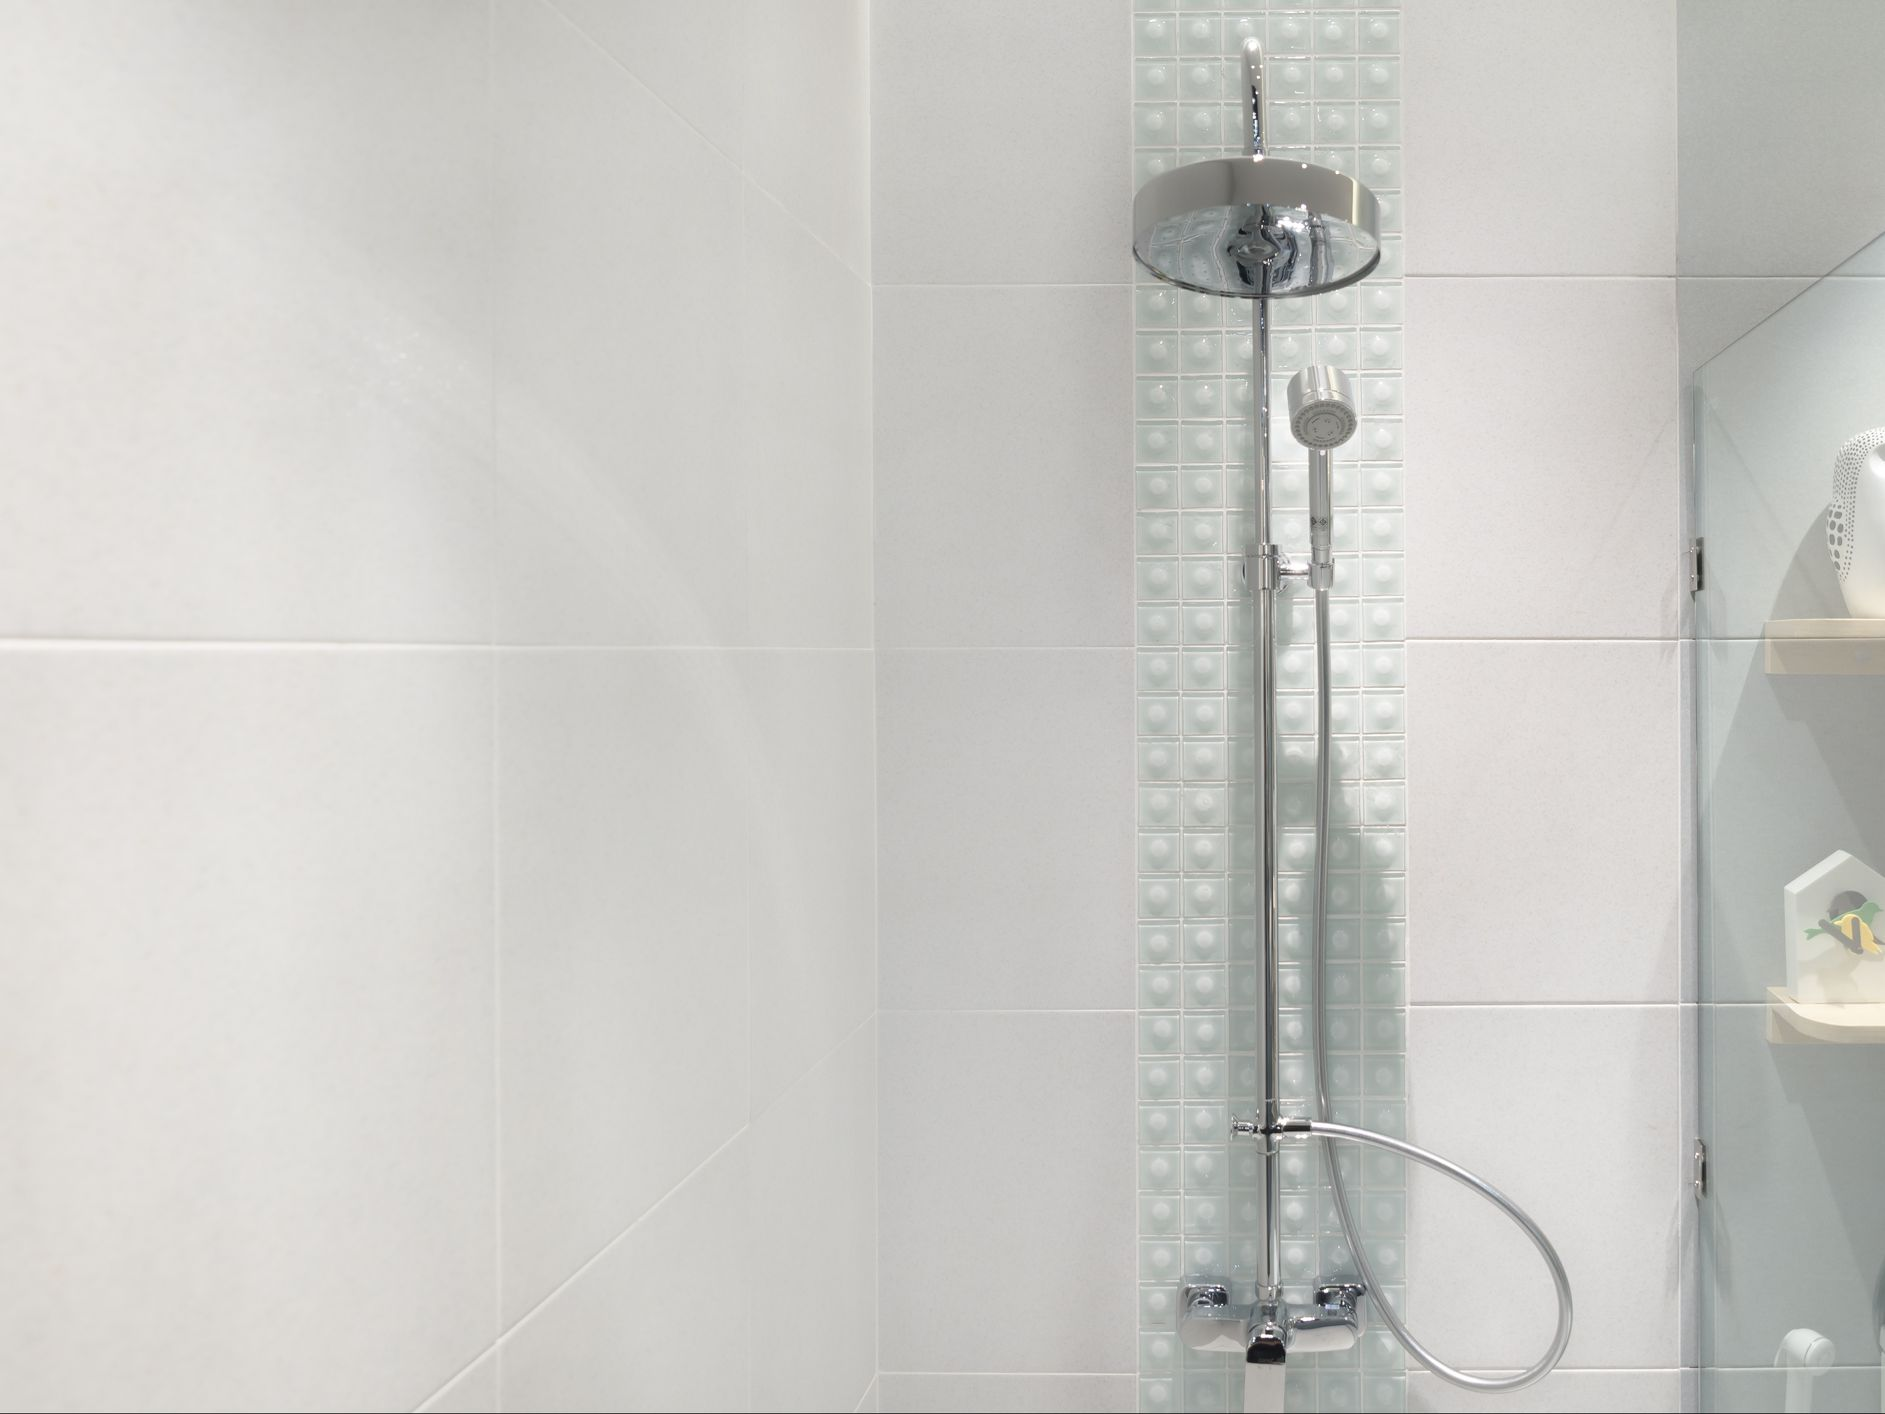 how to remove a shower valve